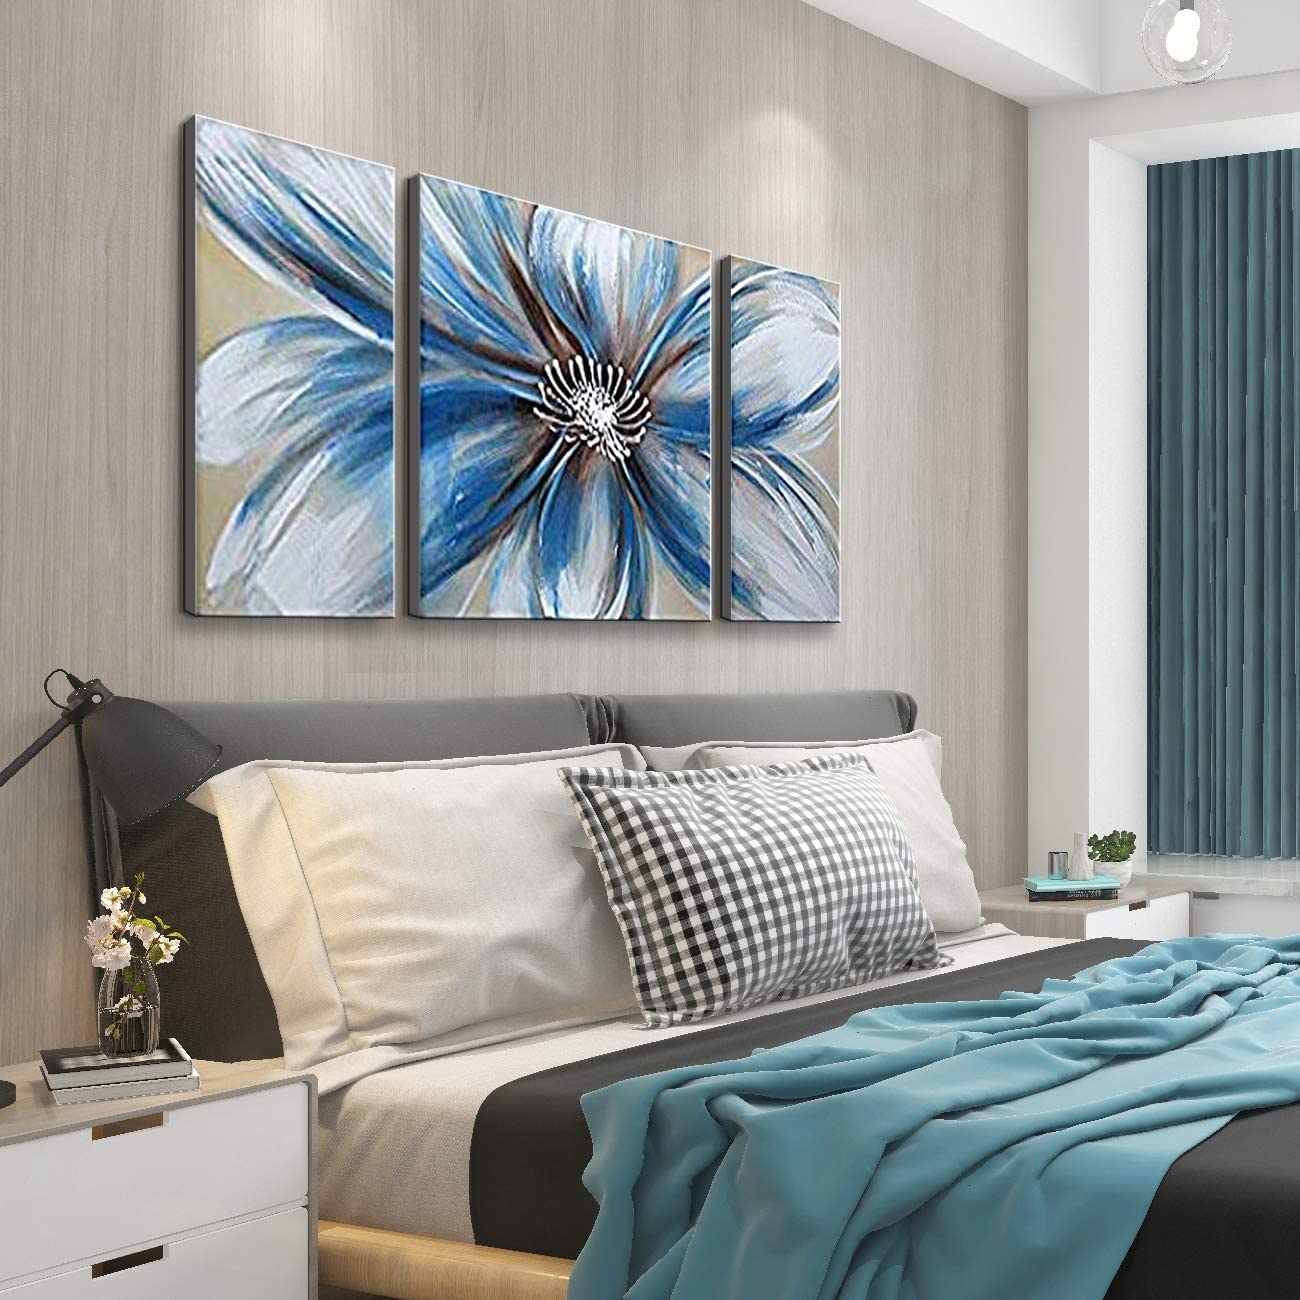 Flower Oil Painting on Canvas Modern 100 Hand Painted Blue Heart 3-Piece Gallery-Wrapped Framed Blue and White Wall Art Ready to Hang for Living Room for Wall Decor Home Decoration 20×40 inches